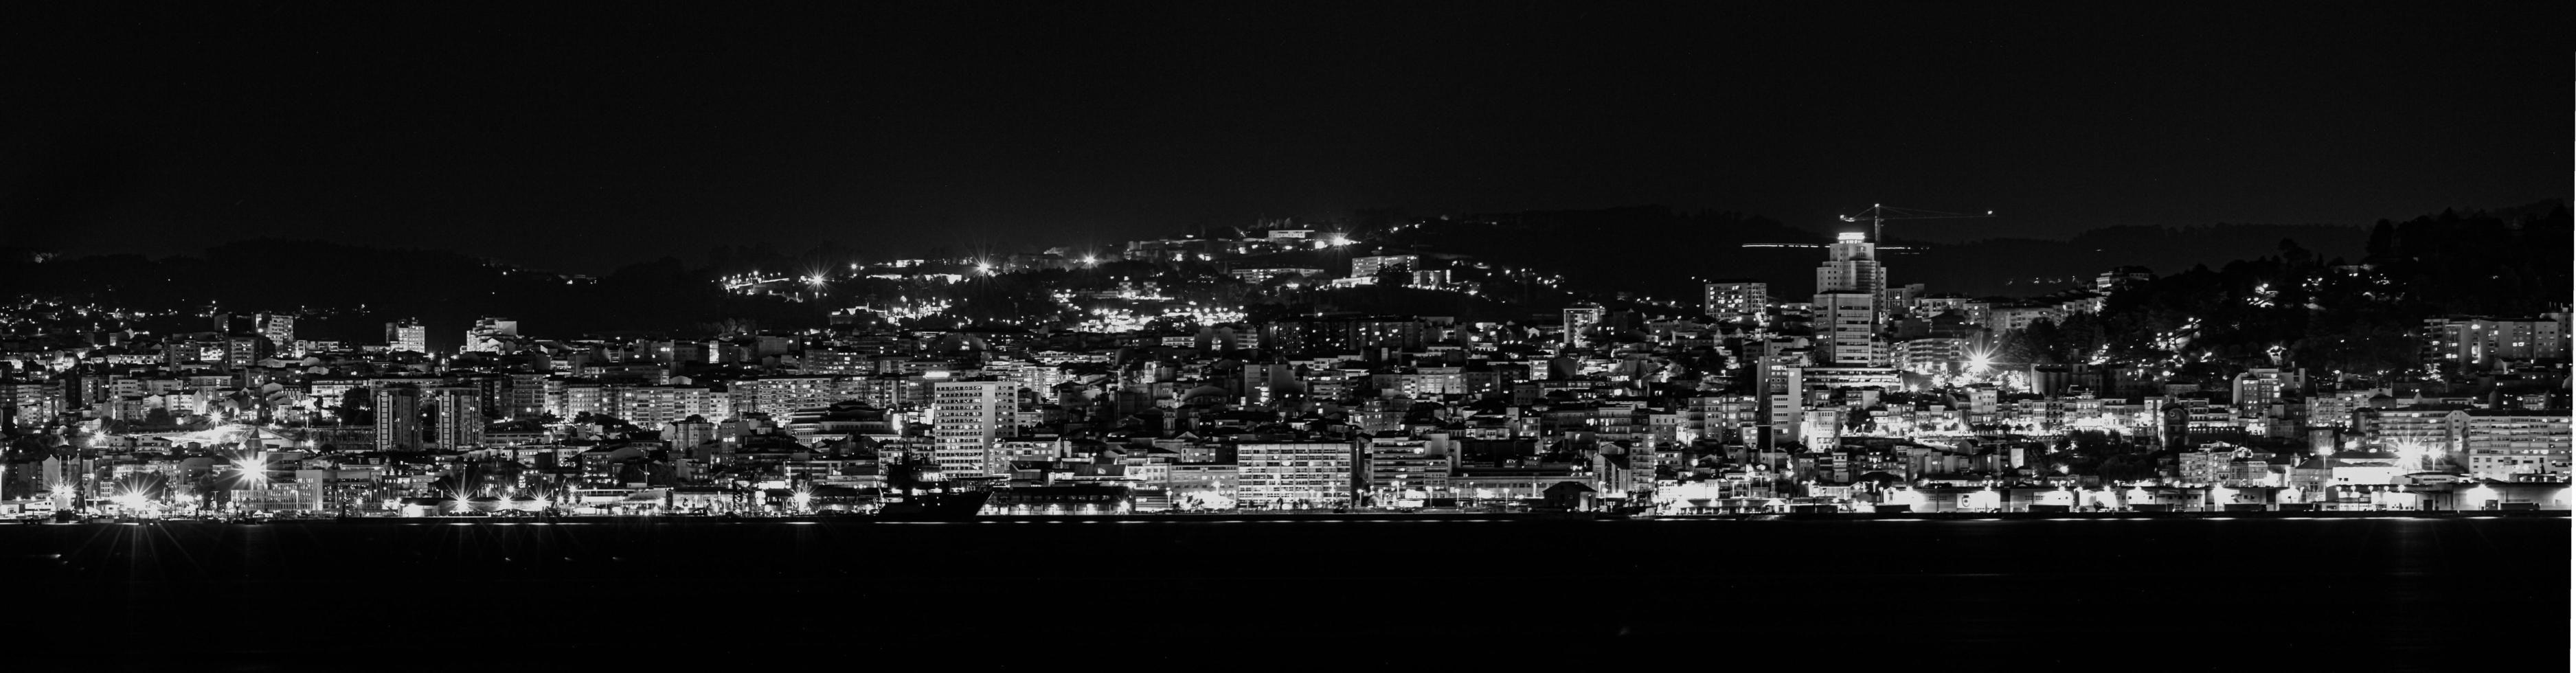 A black and white city  photo